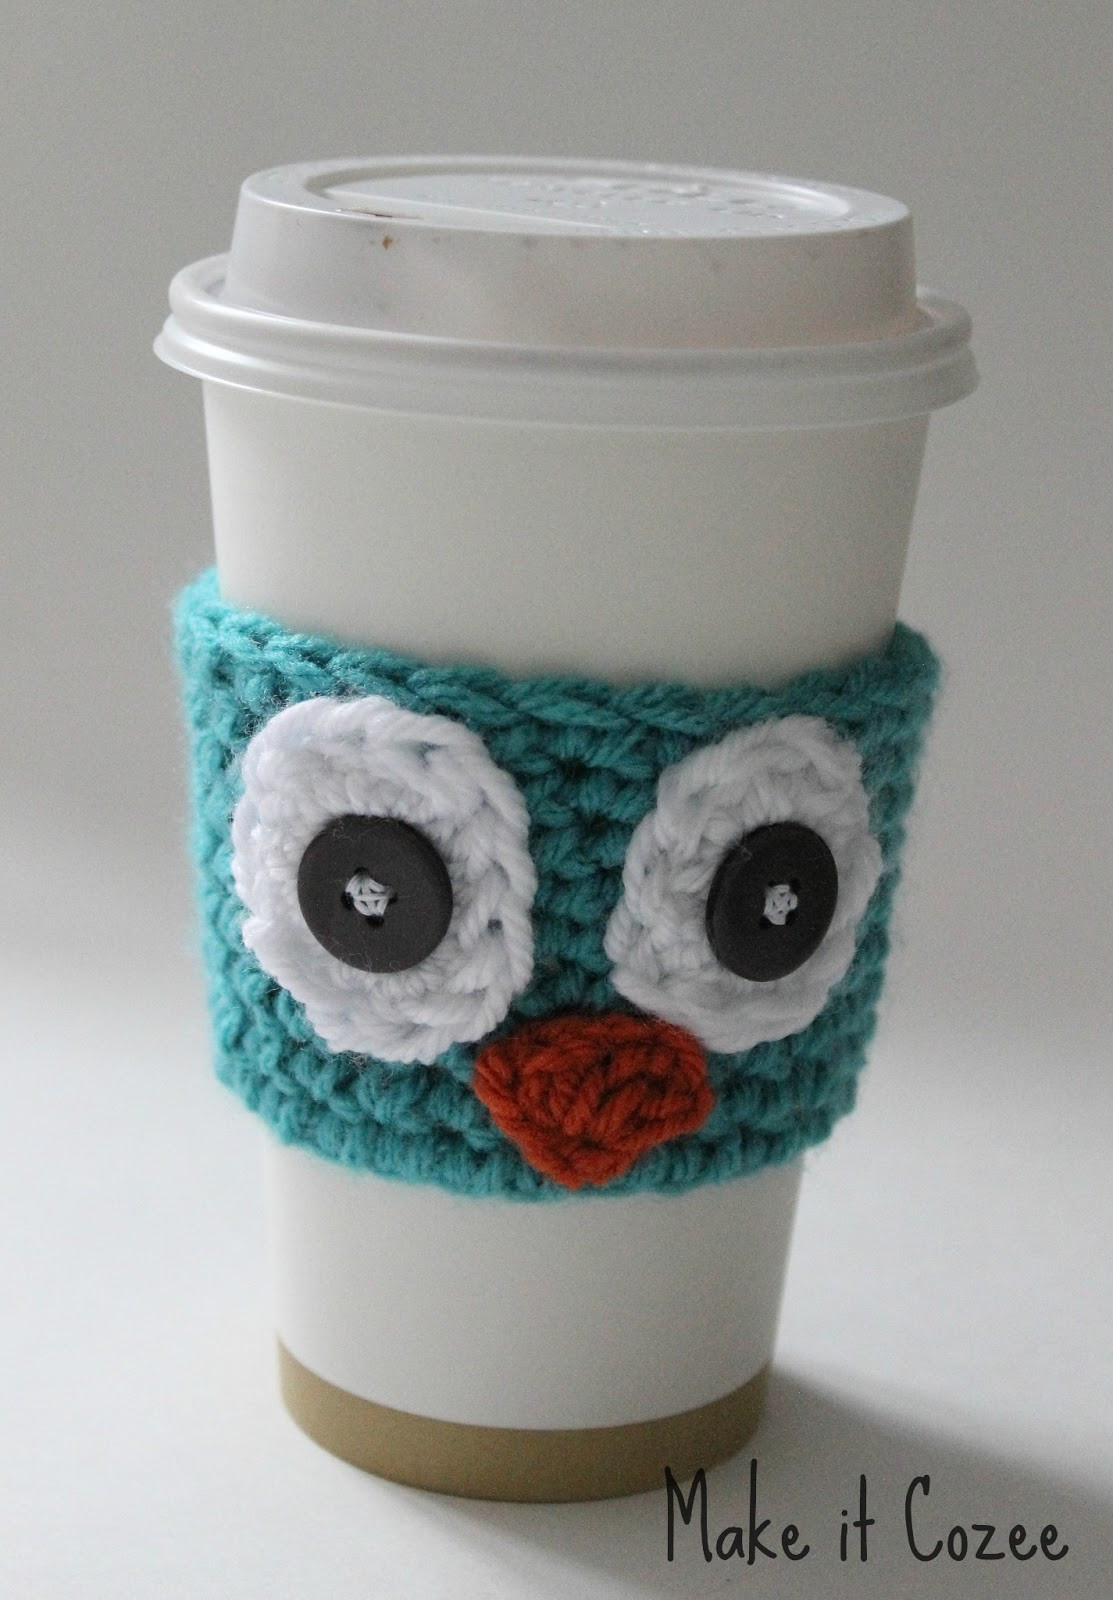 Crochet Coffee Cup Cozy Inspirational Make It Cozee Crochet Owl Coffee Cozy Of Crochet Coffee Cup Cozy Inspirational Crochet Class Beginning Crochet Sparkleez Crystles